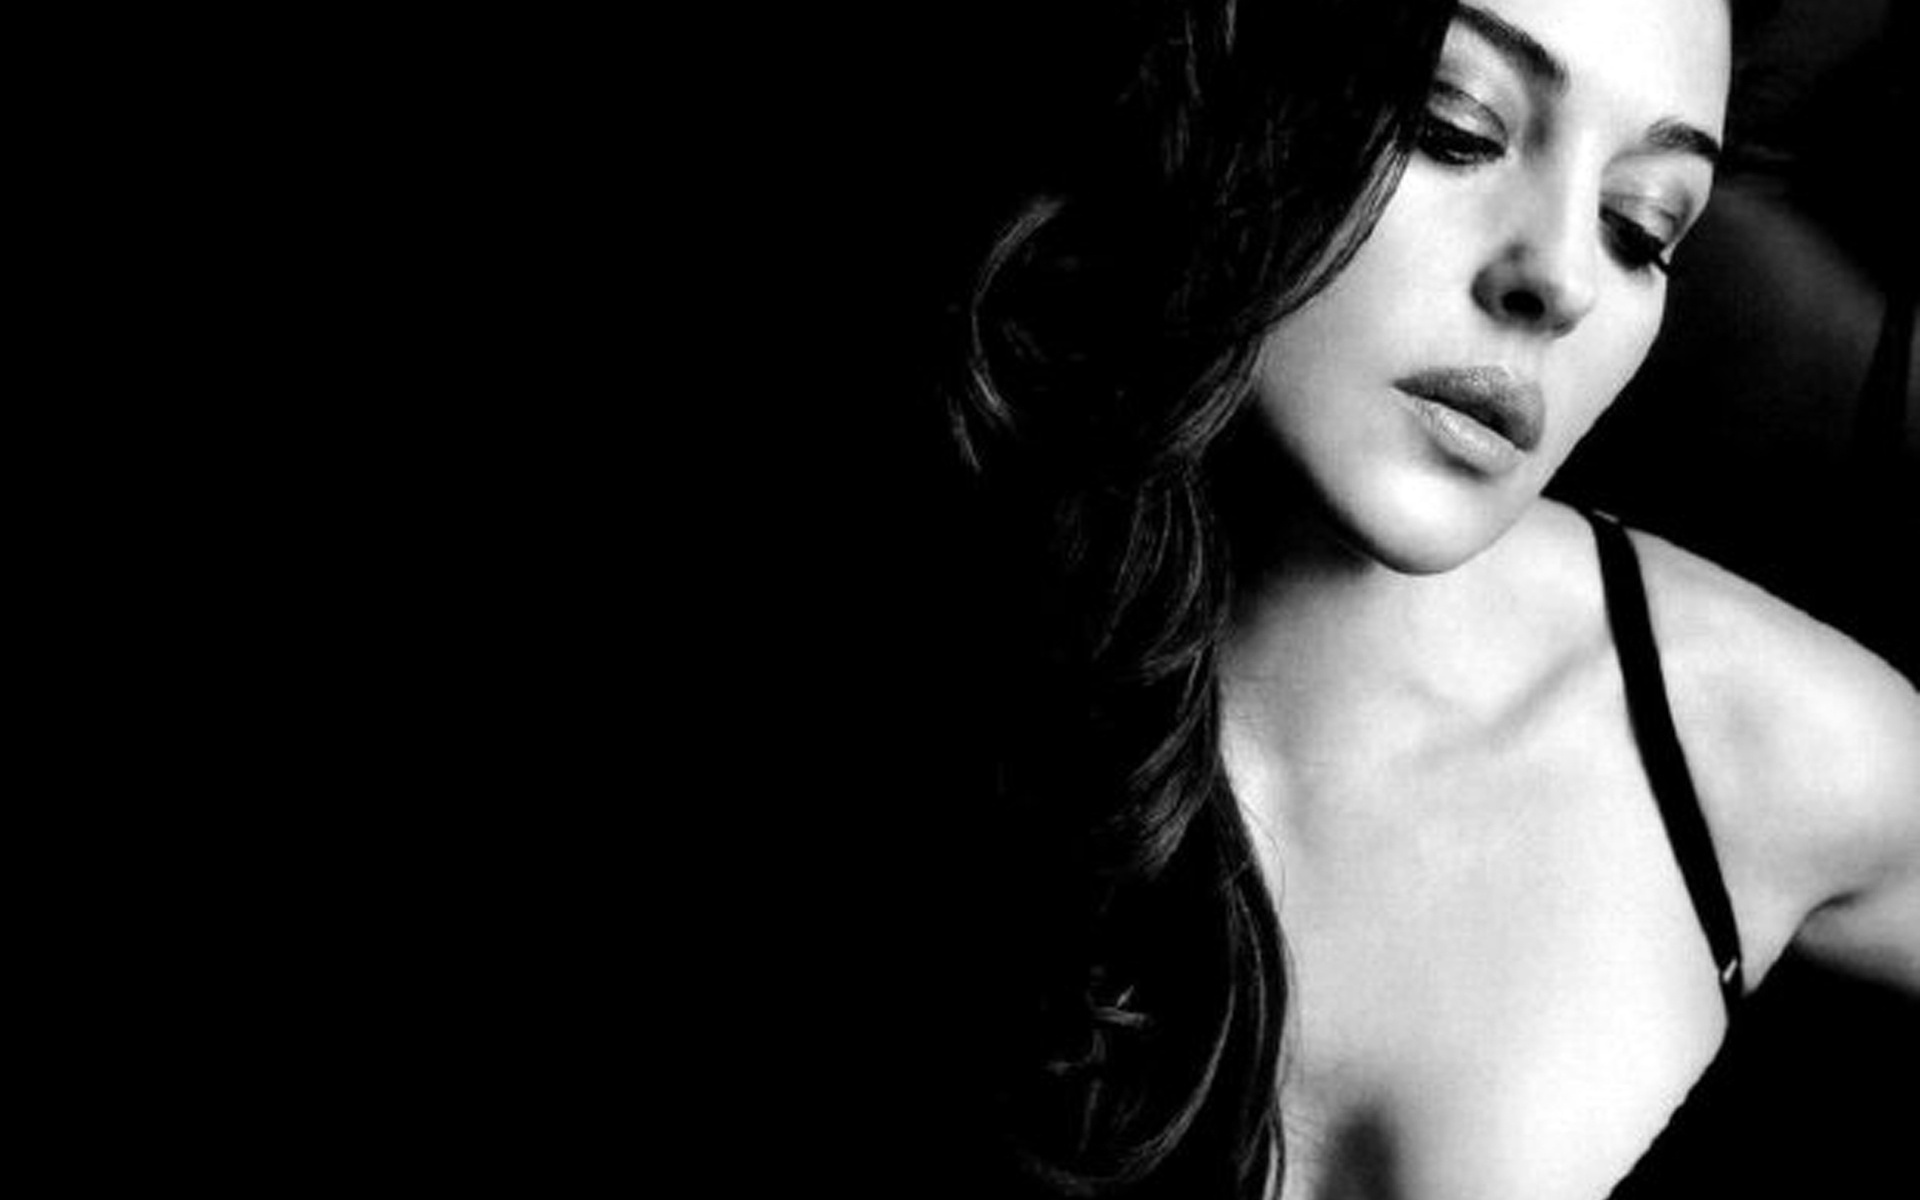 Monica Bellucci Wallpapers HQ